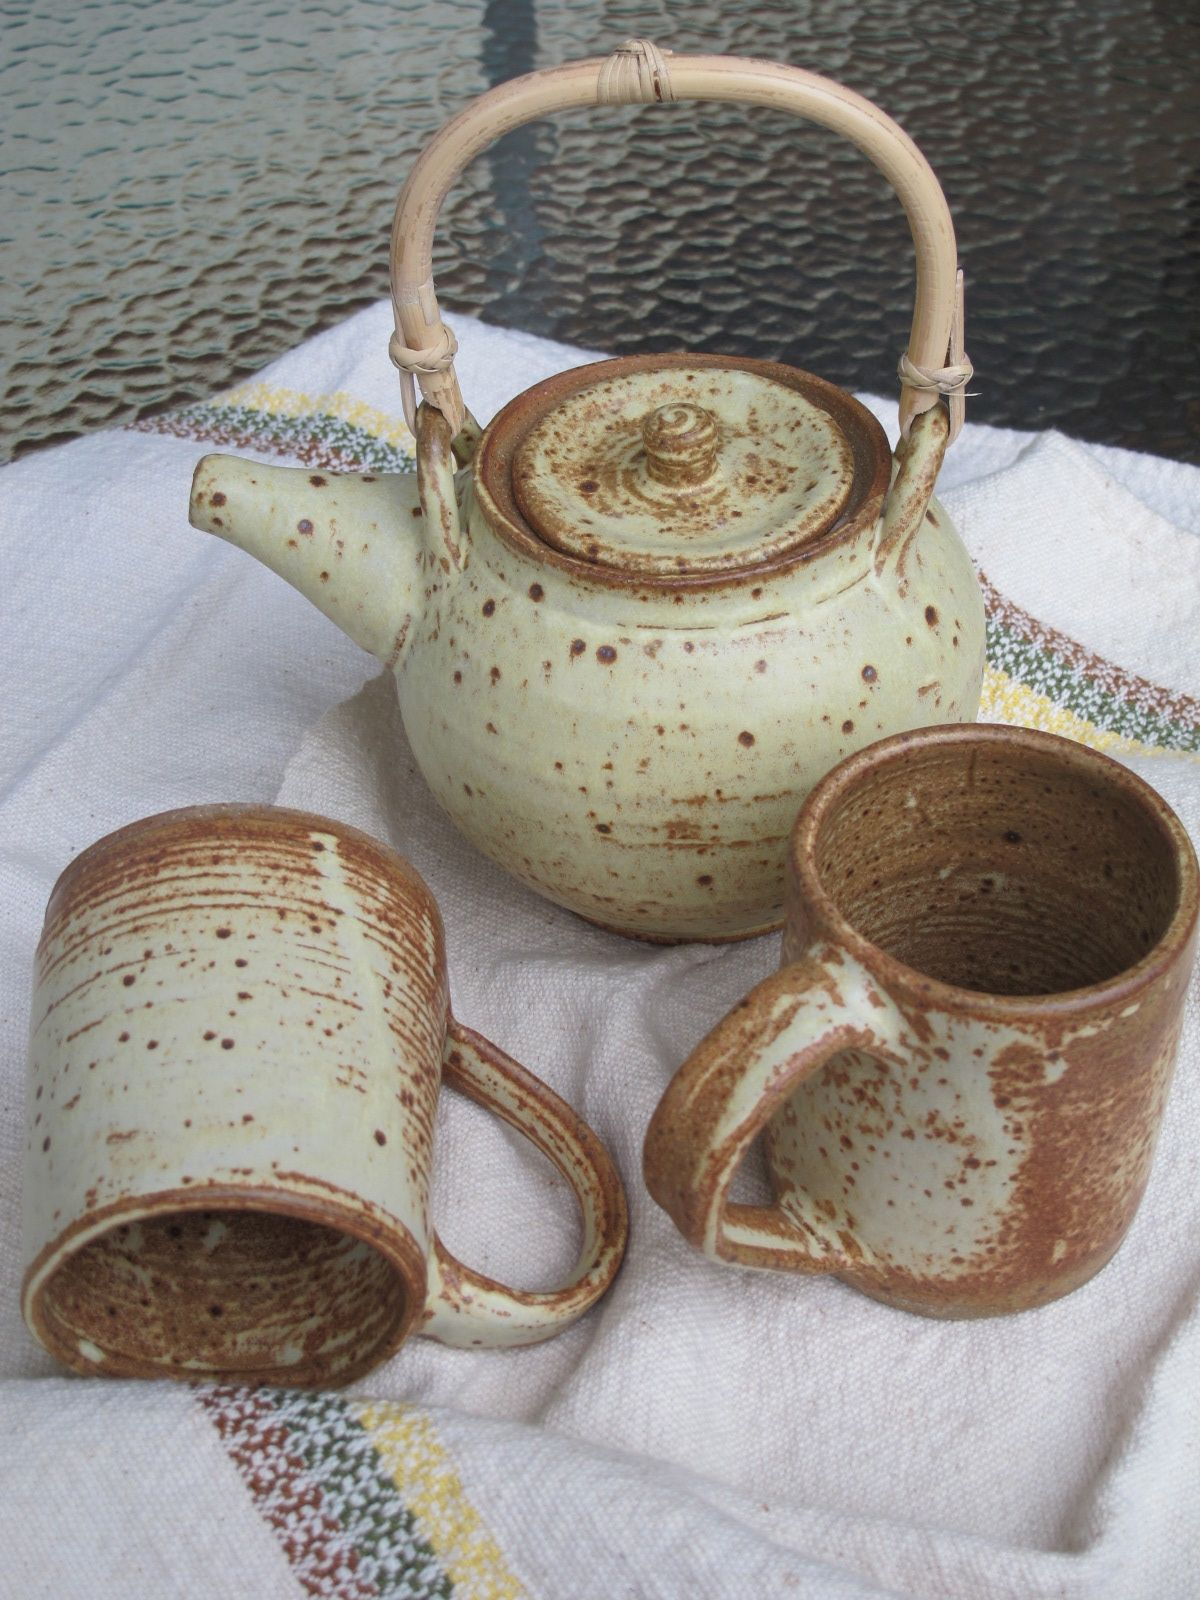 New Prospect Pottery offers handmade functional ceramics for the home fired in their 40 cubic foot gas kiln